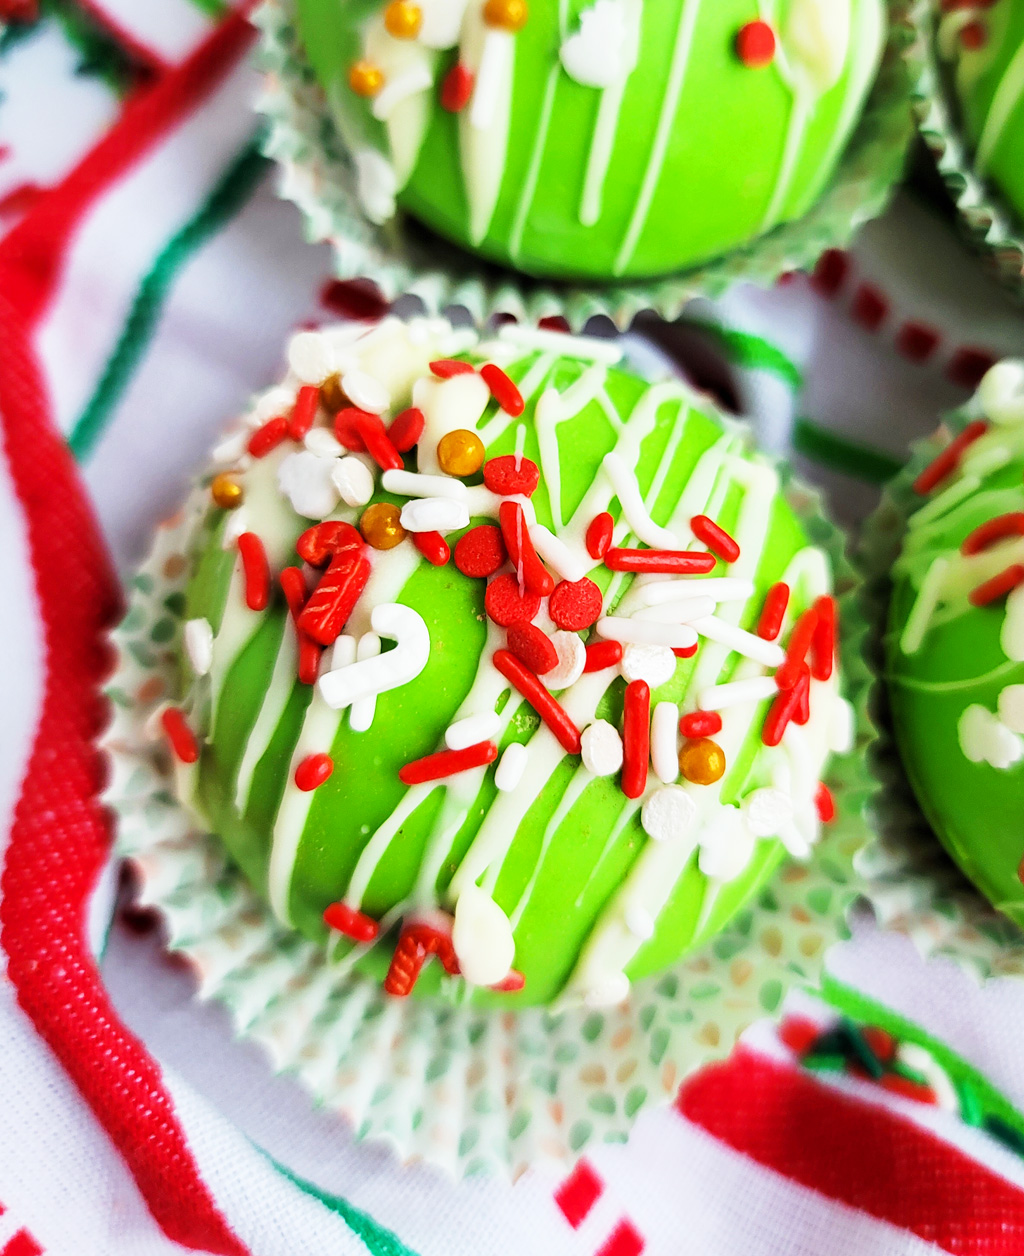 Green Grinch hot chocolate bombs with white chocolate drizzled on top, with Christmas sprinkles. DIY Hot chocolate bomb recipe. www.littleeatsandthings.com